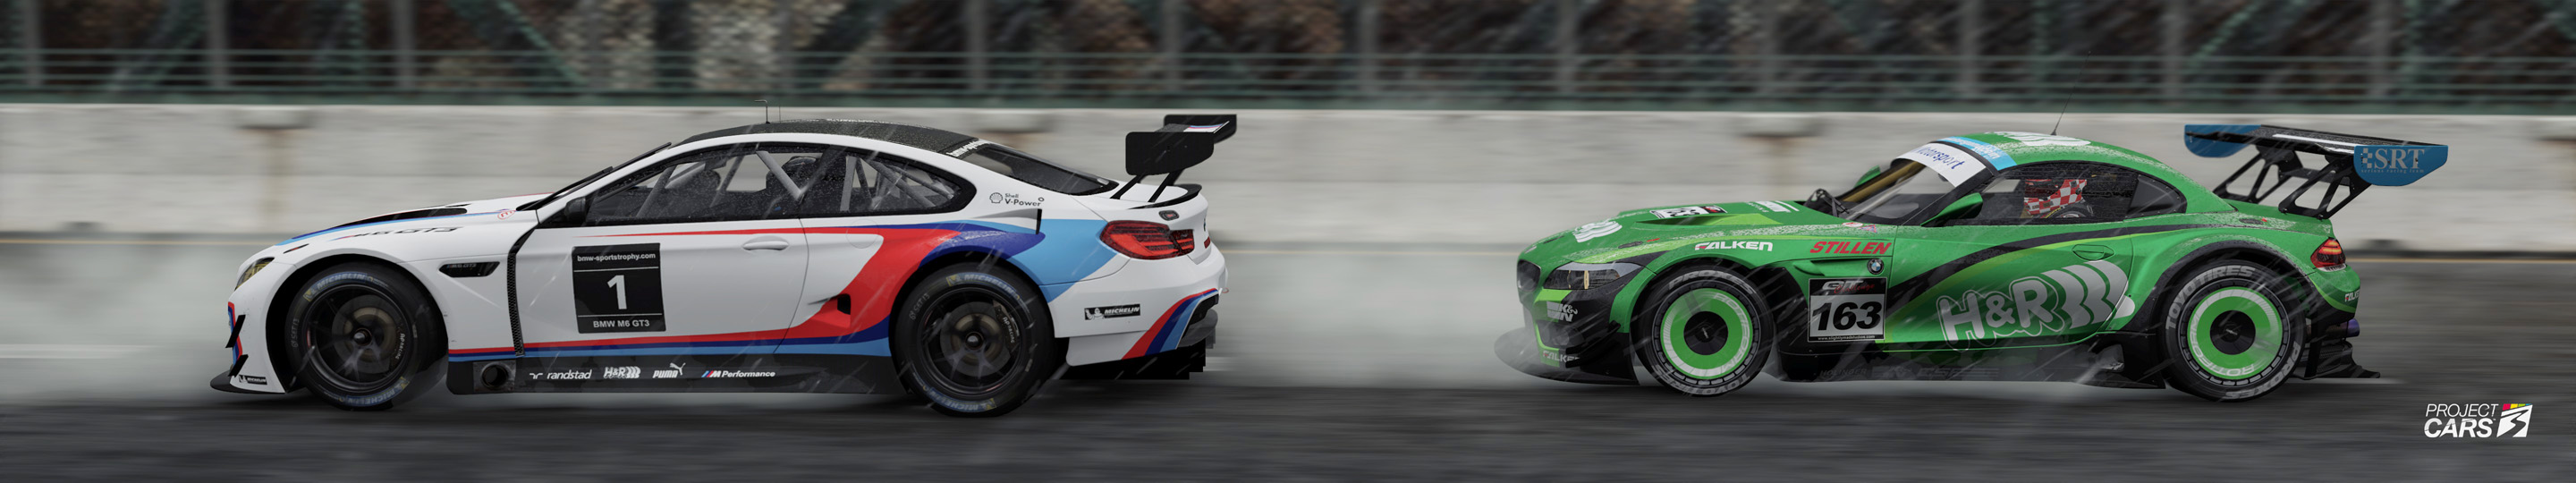 1 PROJECT CARS 3 BMW Z4 GT3 at CALI HIGHWAY REVERSE copy.jpg